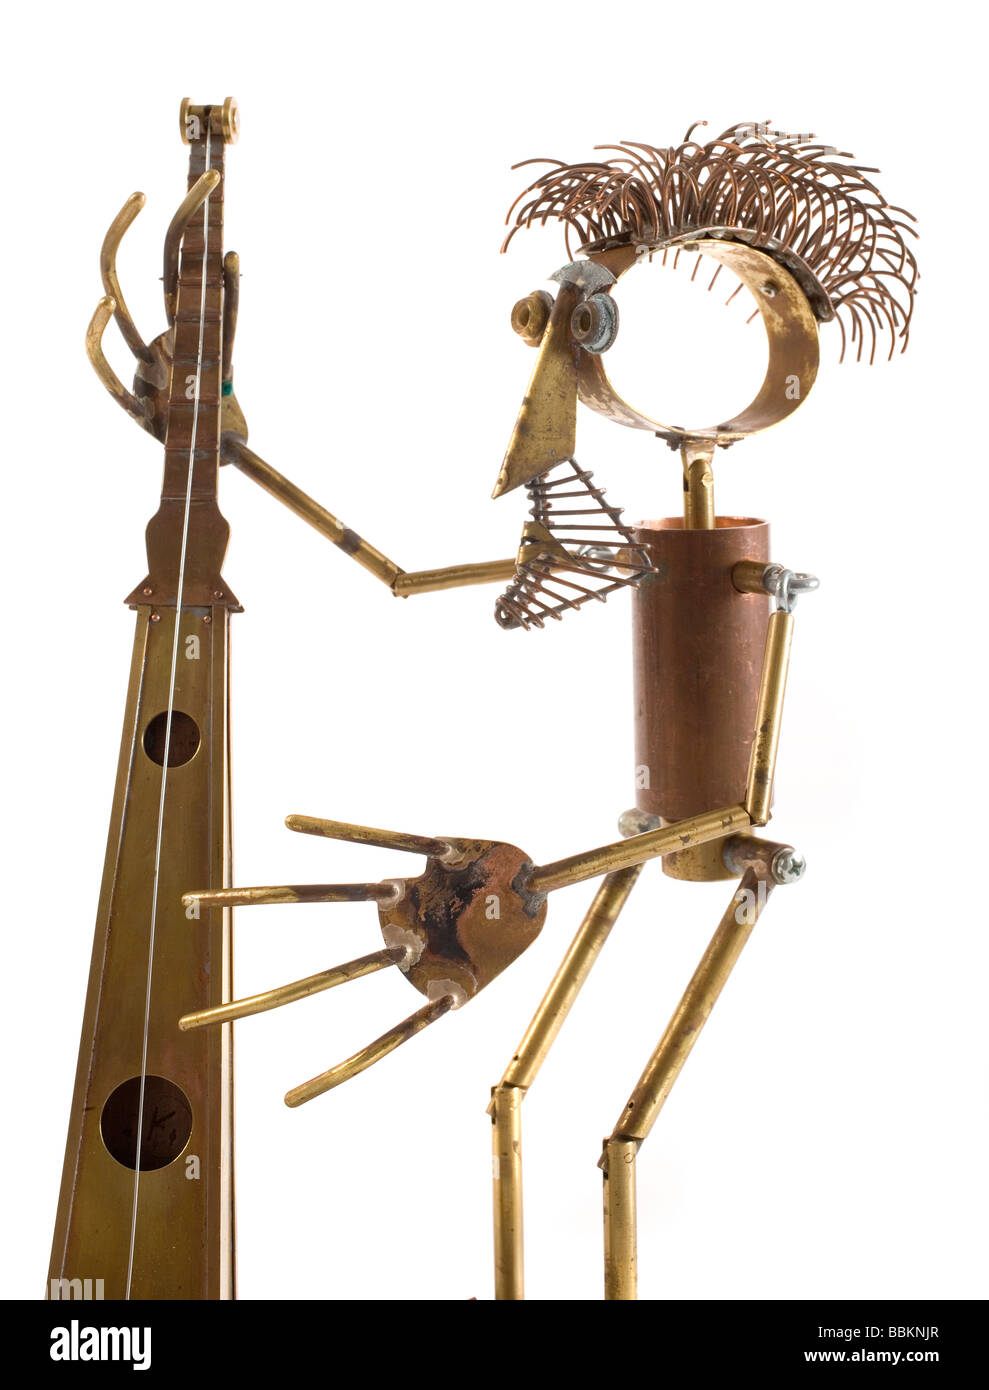 marionettes manufactured manually with different metals, political caricatures, work of art, workmanship - Stock Image